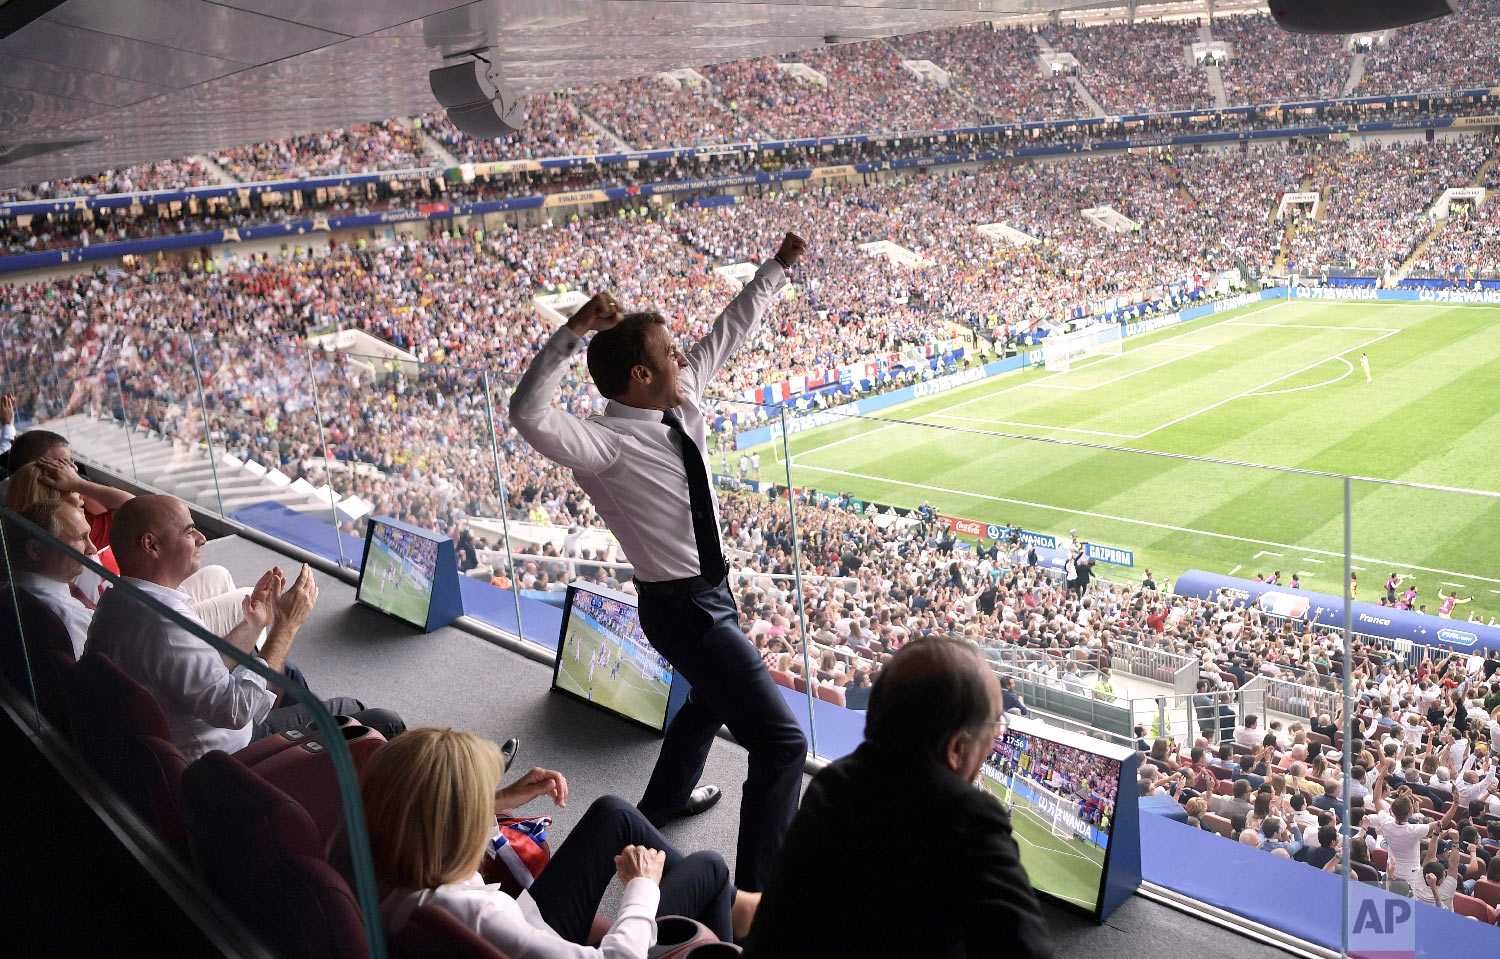 French President Emmanuel Macron cheers during the final match between France and Croatia at the 2018 soccer World Cup in the Luzhniki Stadium in Moscow, Russia, on July 15, 2018. (Alexei Nikolsky/Sputnik/Kremlin Pool Photo via AP)